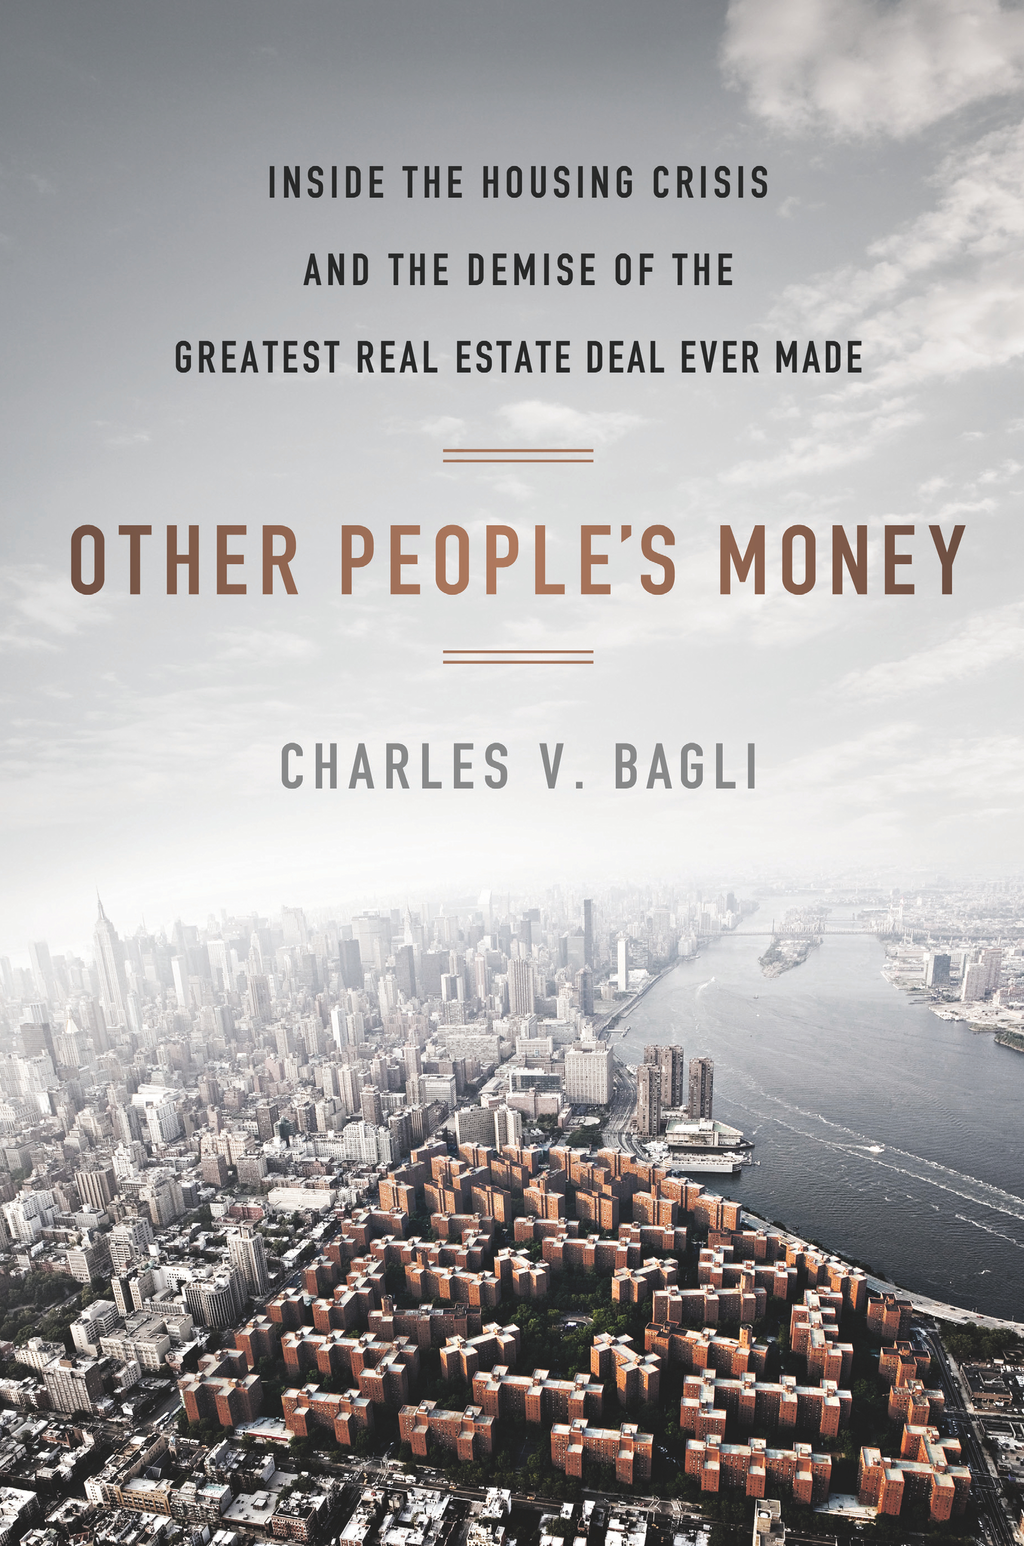 Other People's Money Inside the Housing Crisis and the Demise of the Greatest Real Estate Deal Ever Made